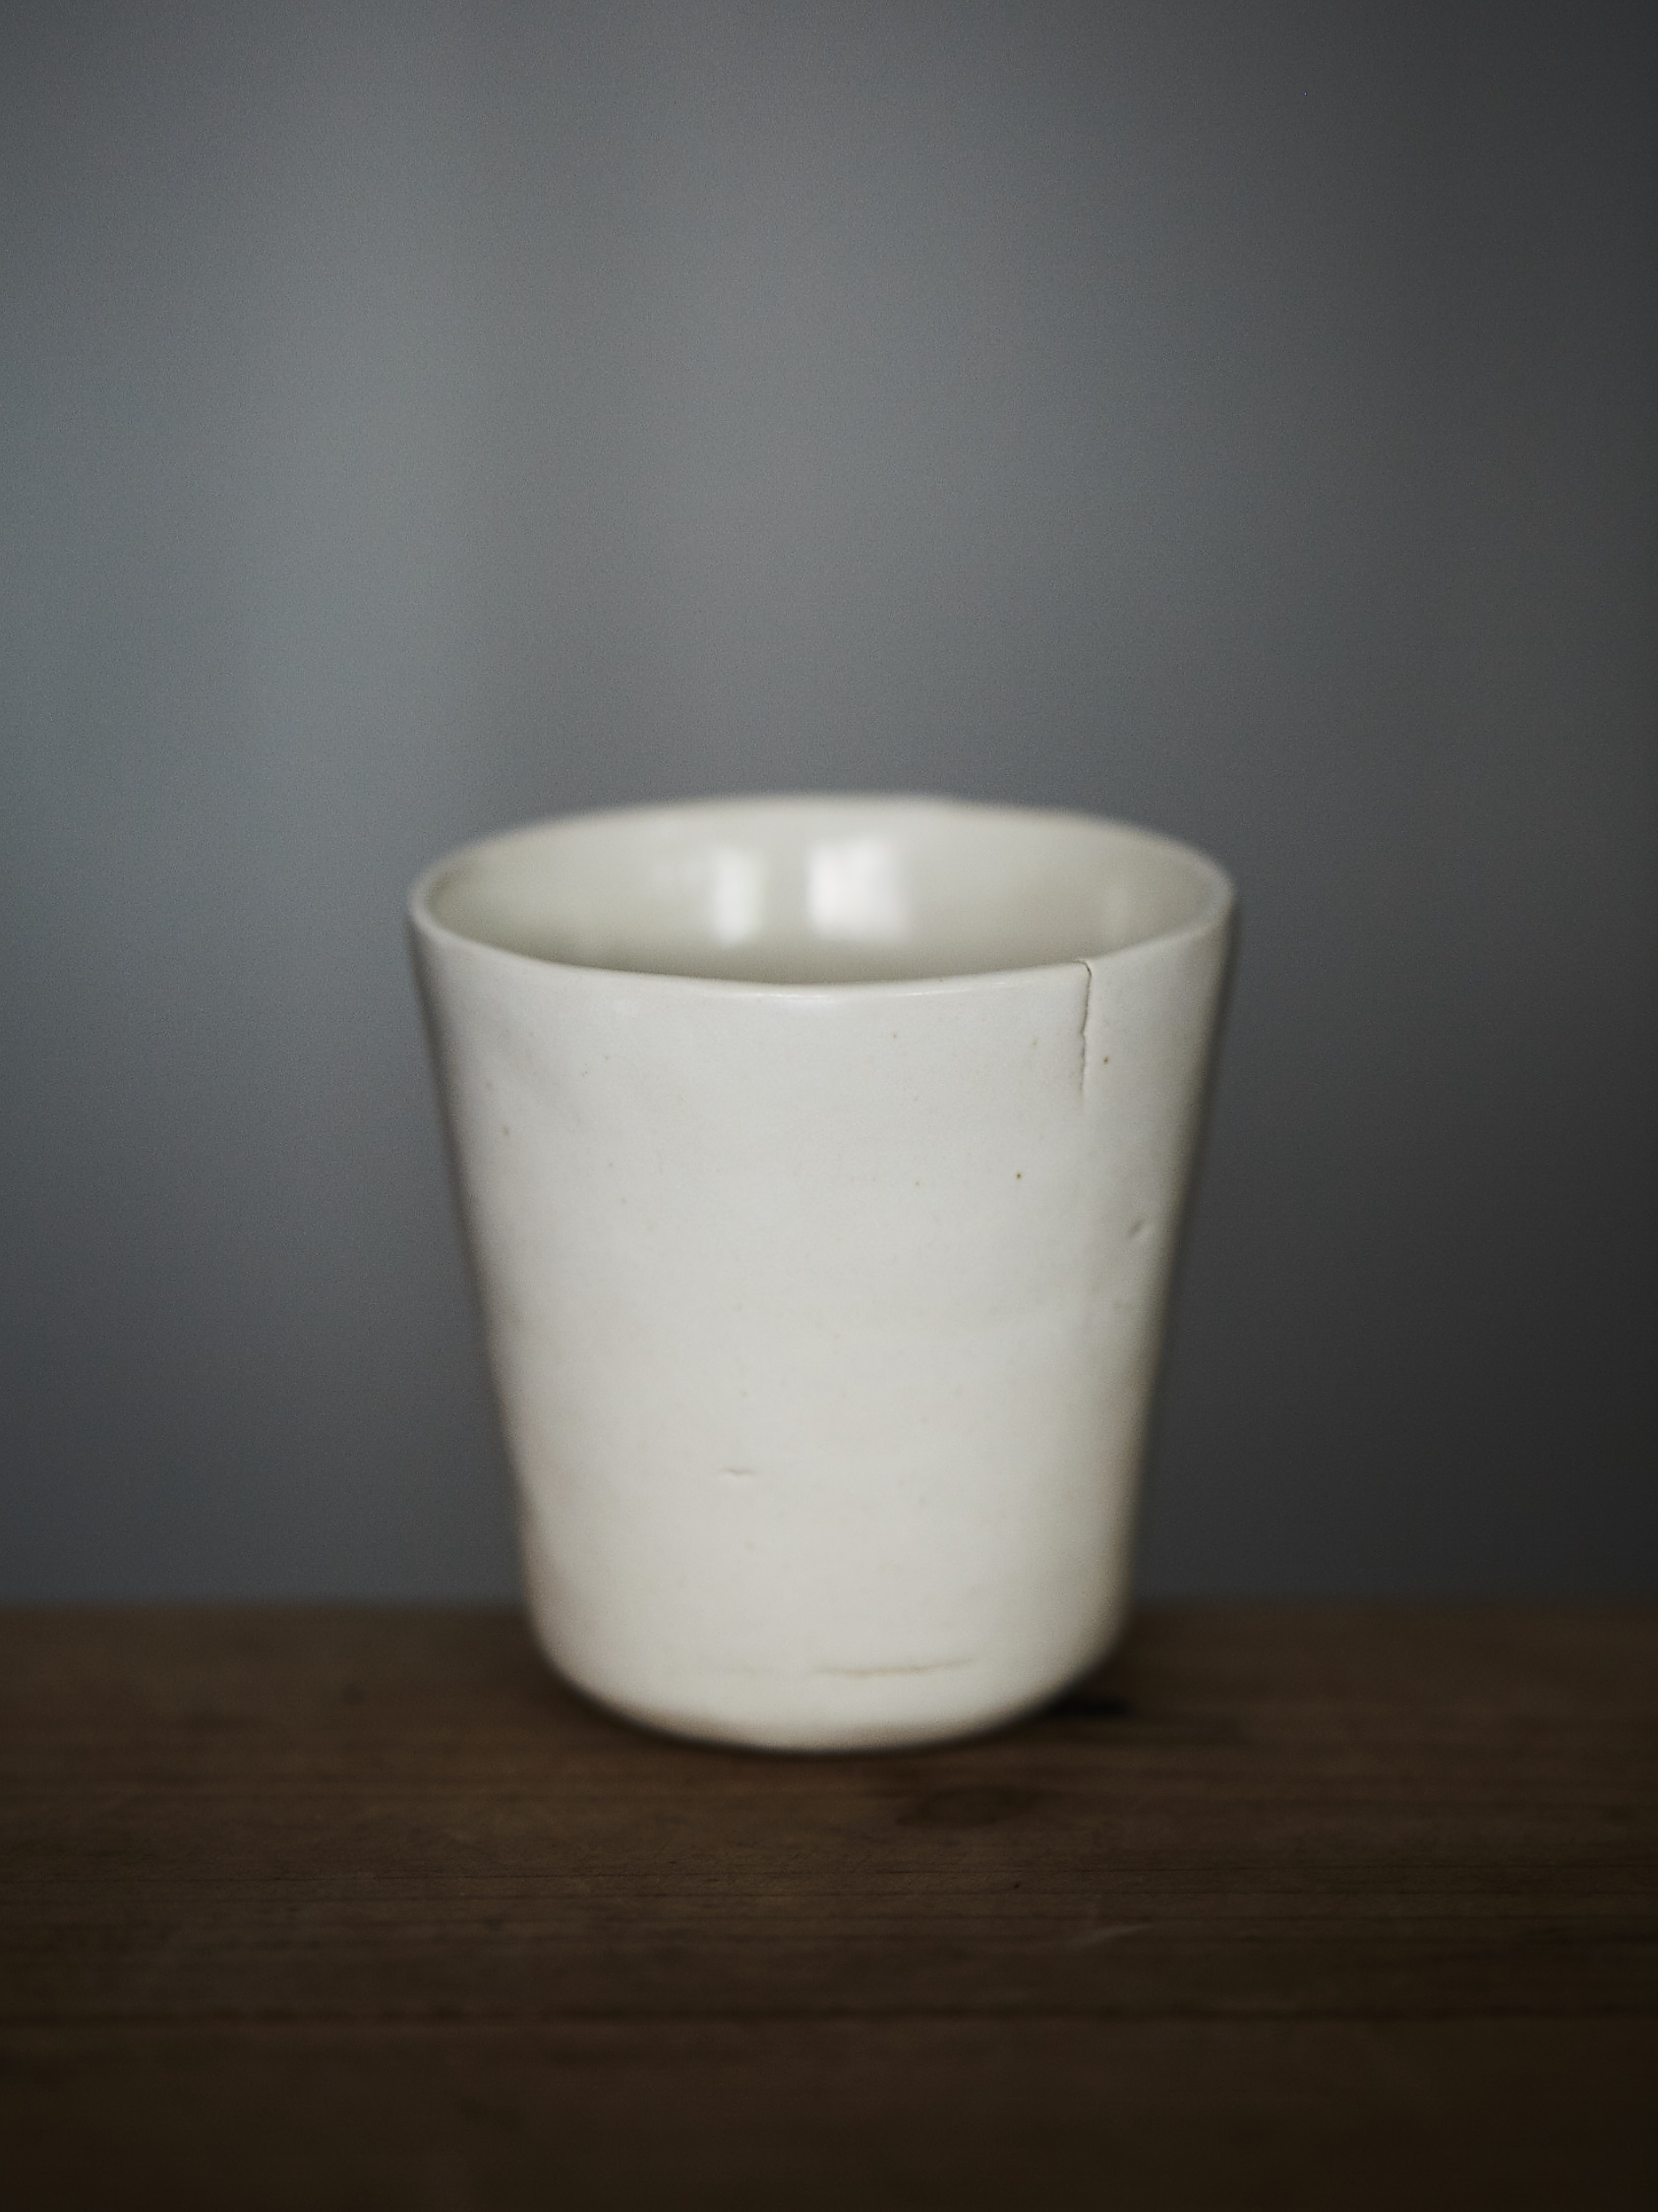 IScup_024.jpg